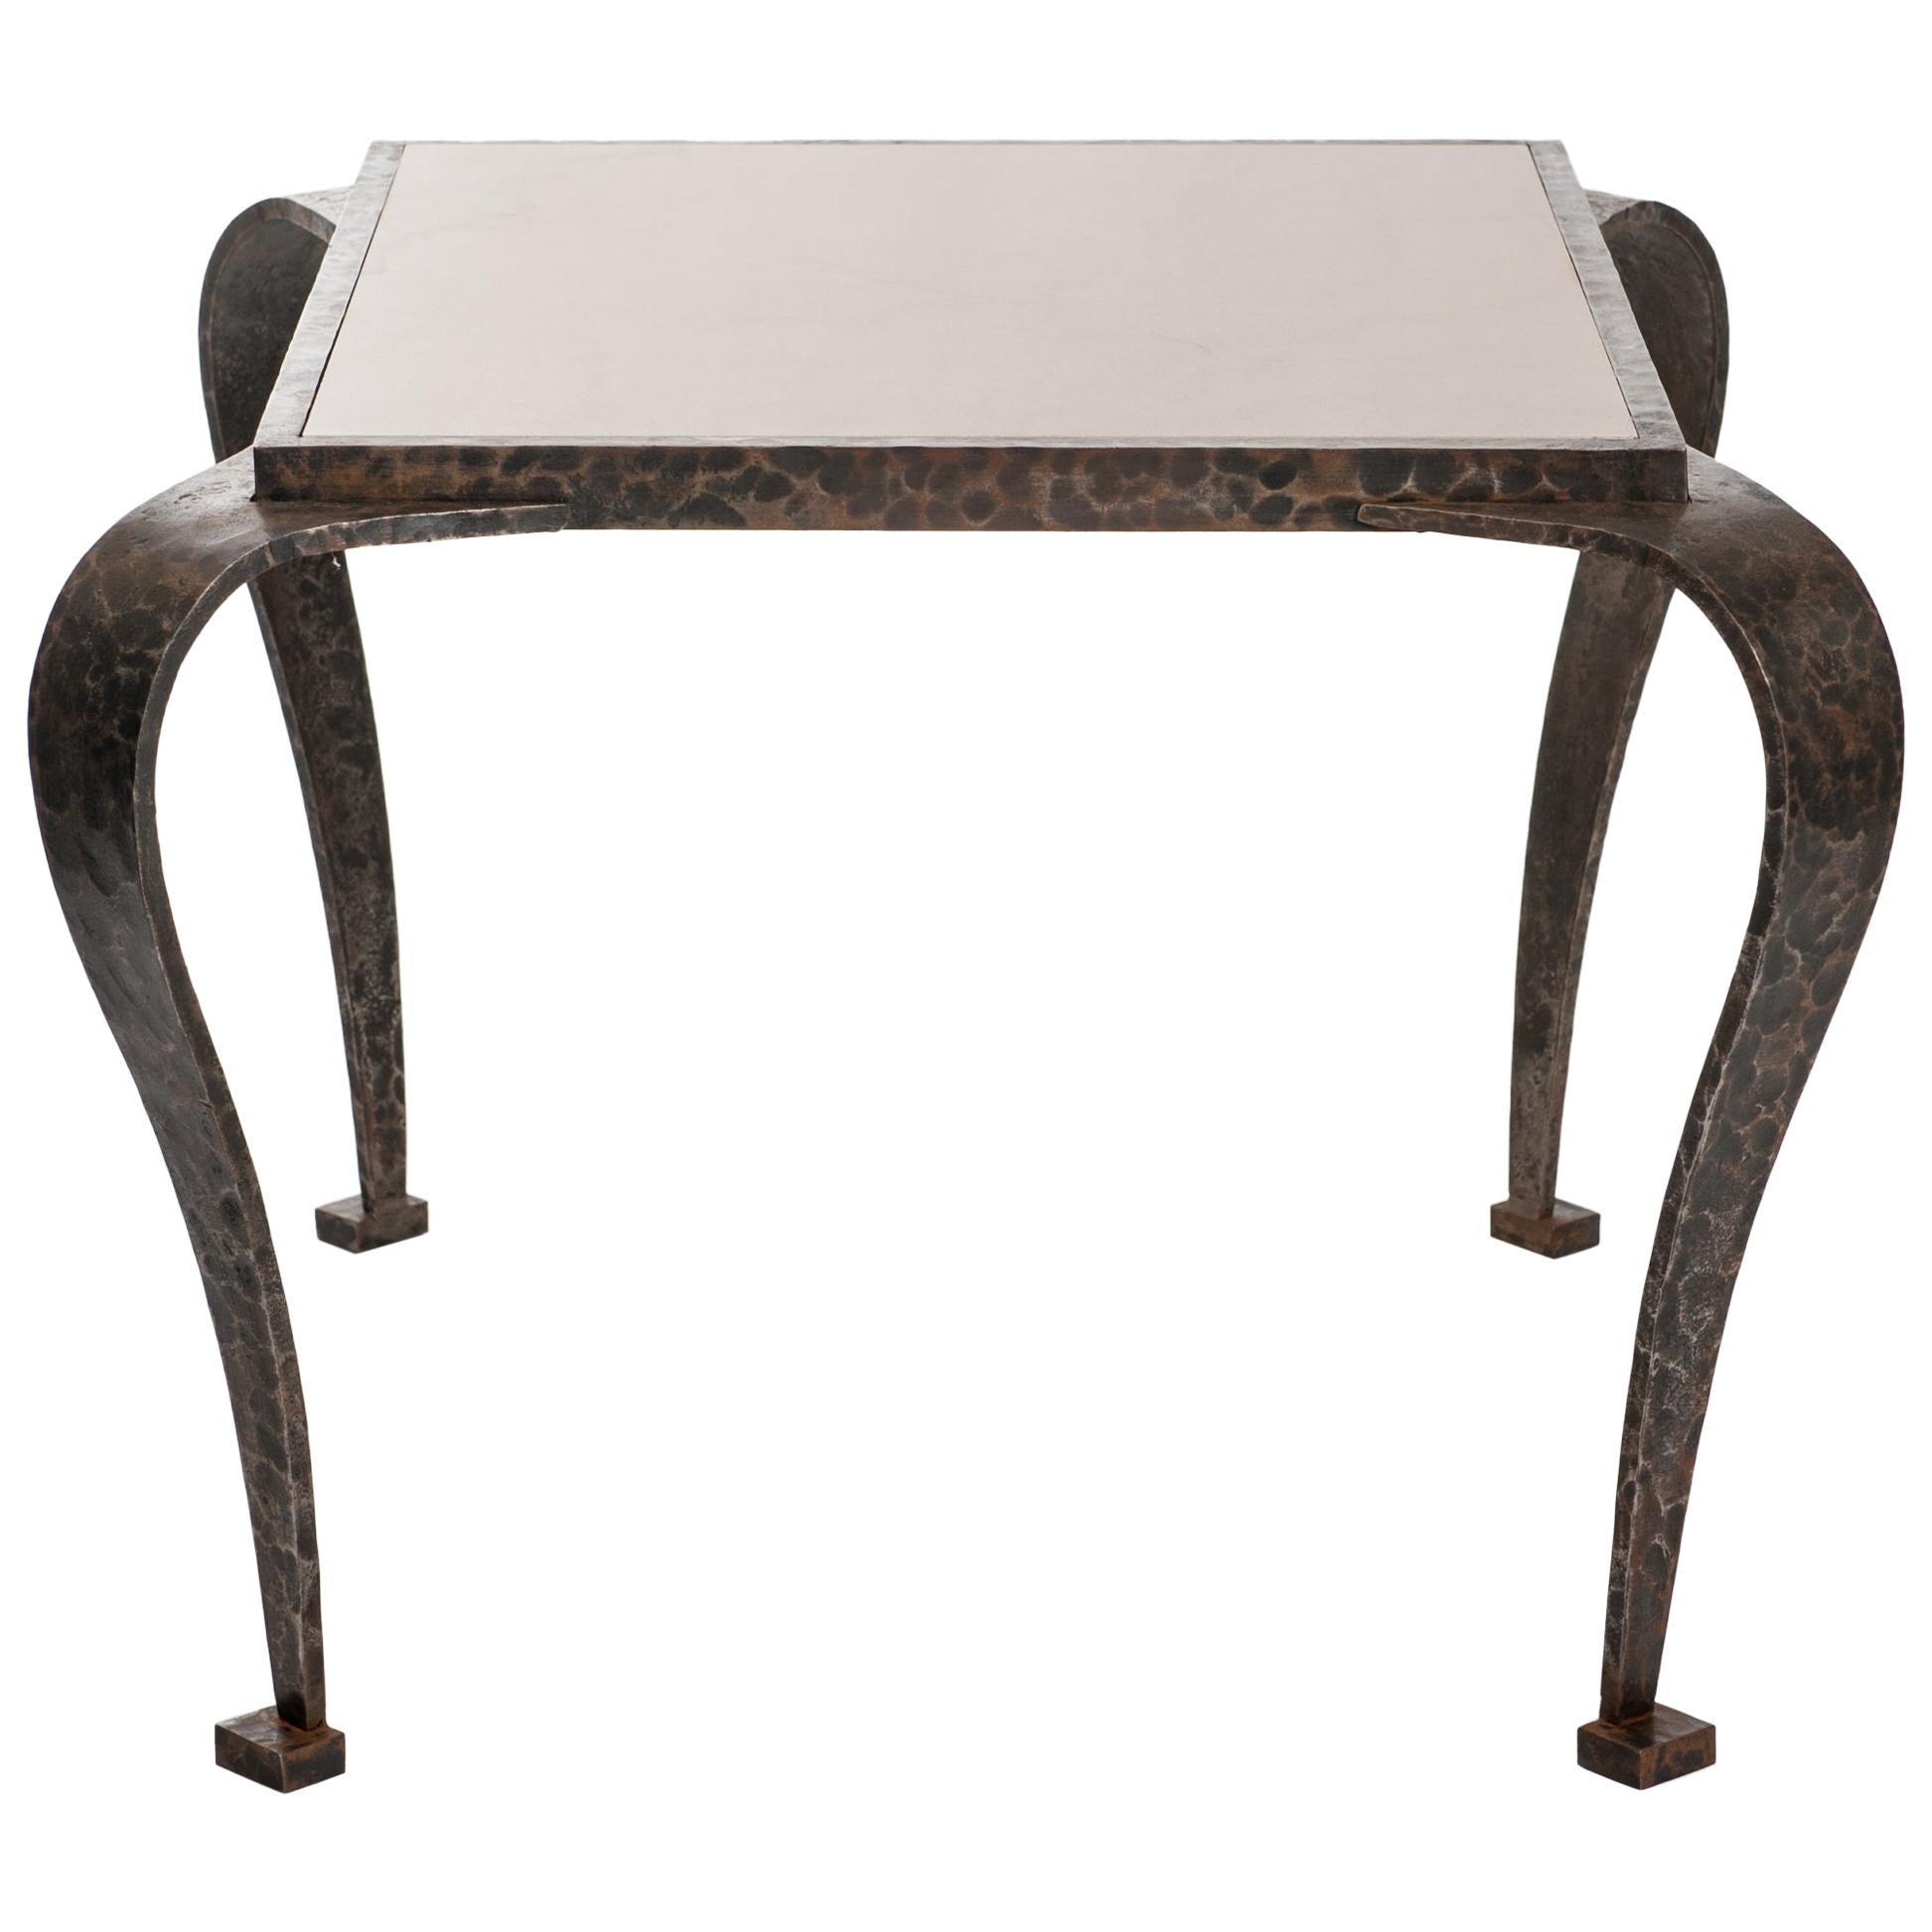 French Art Deco Side Table Solid Iron with Marble Top Attributed to V. Ducrot